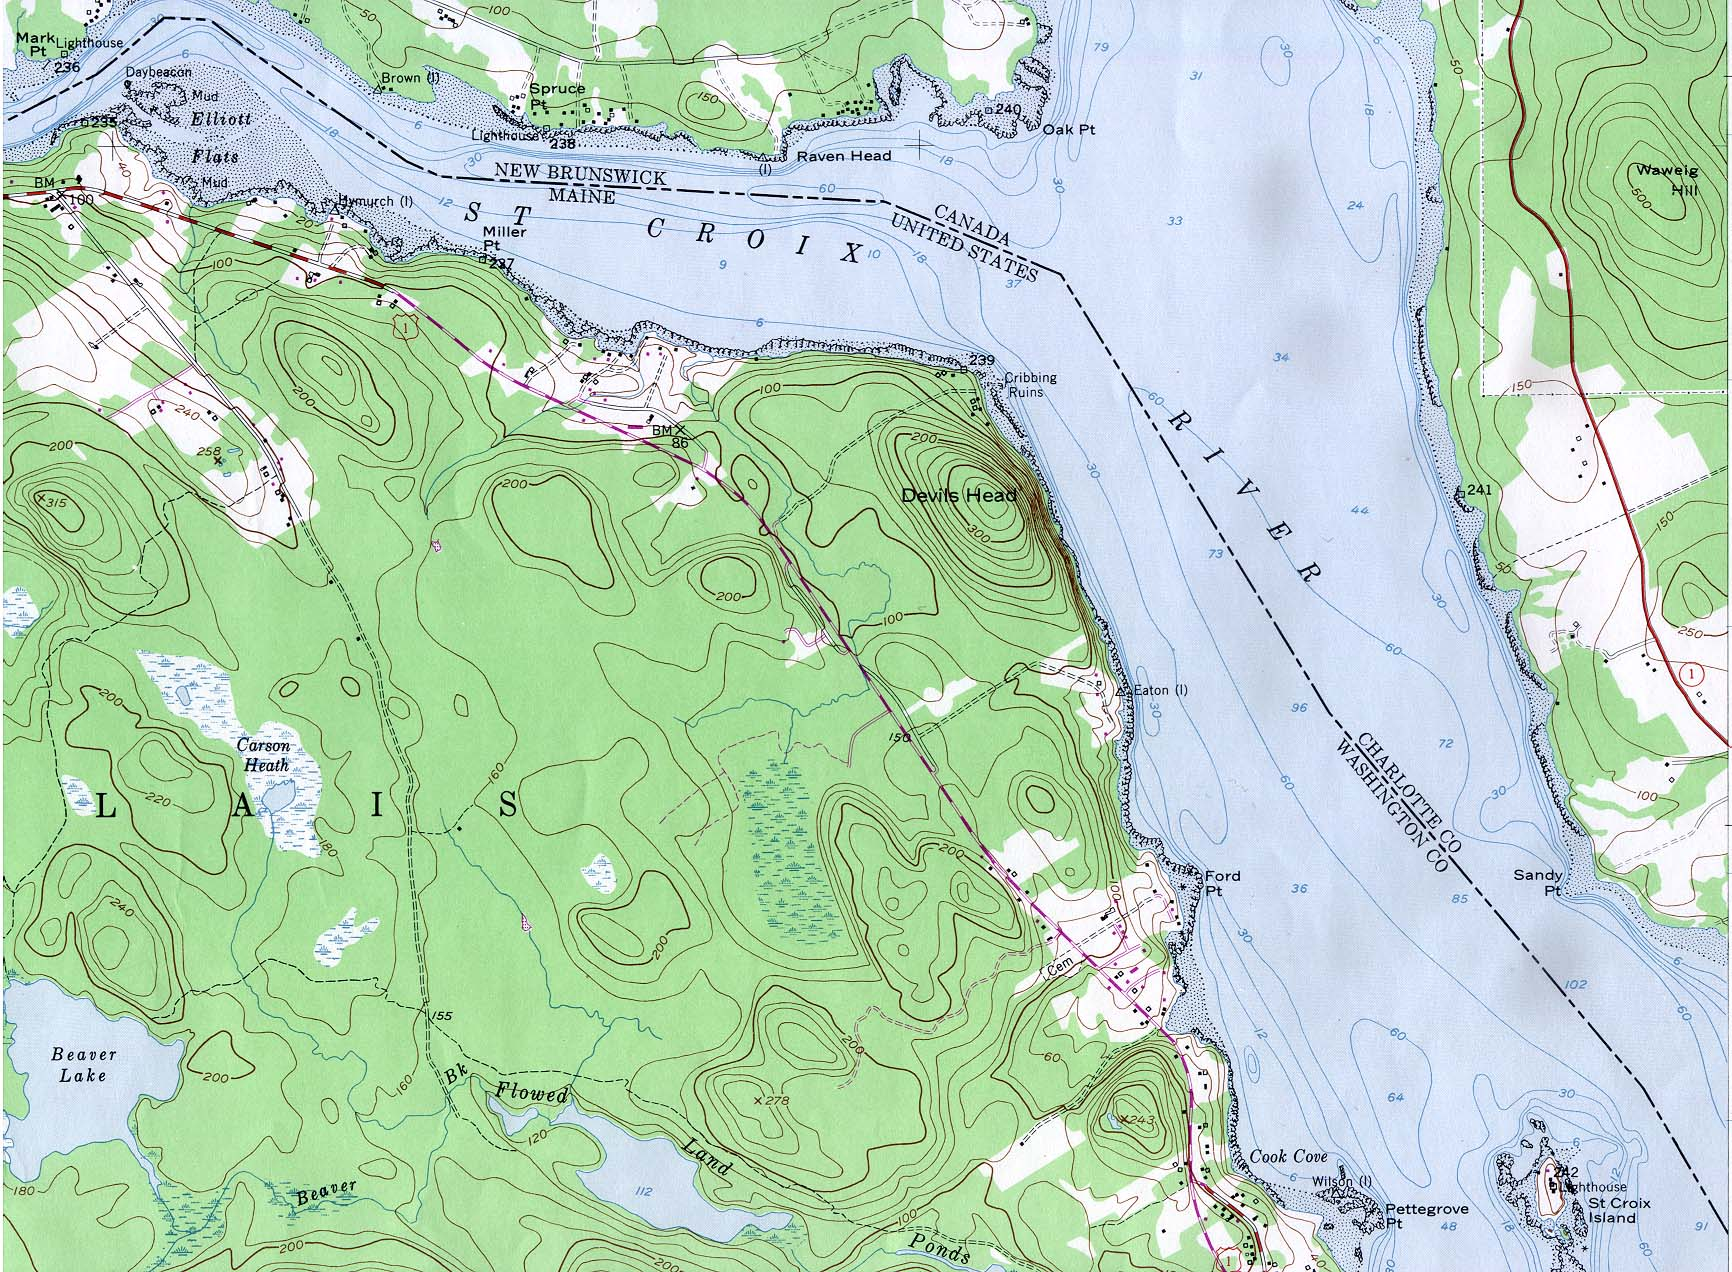 Topographic Map of St. Croix River from Mark Point Lighthouse to St. Croix Island